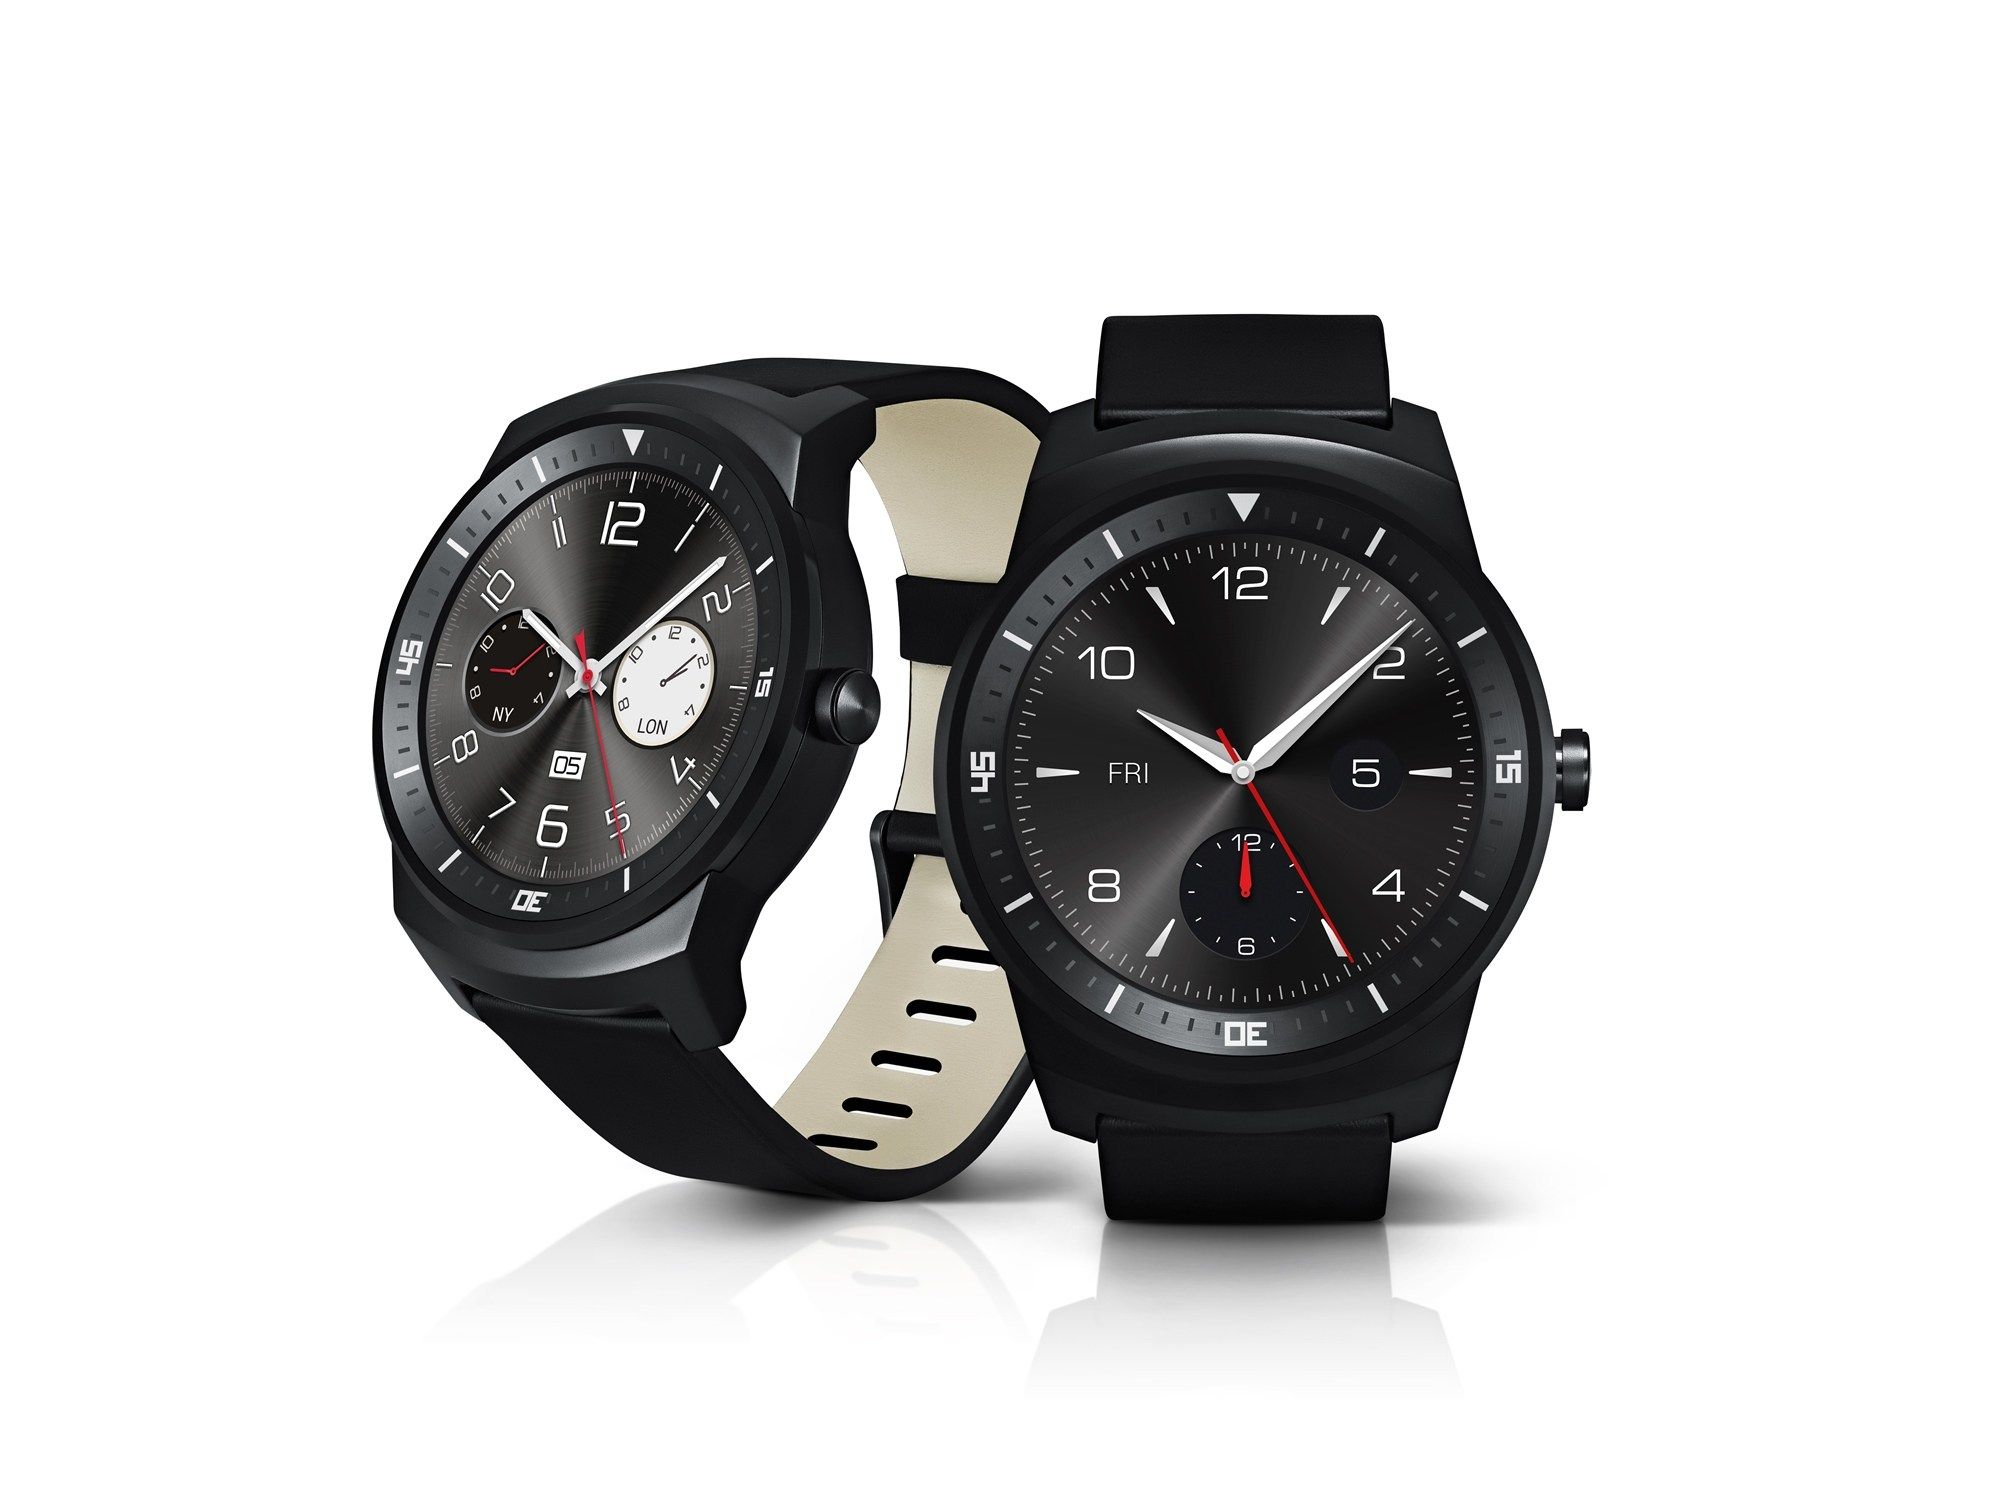 LG G Watch R : on connait son prix et sa date de sortie